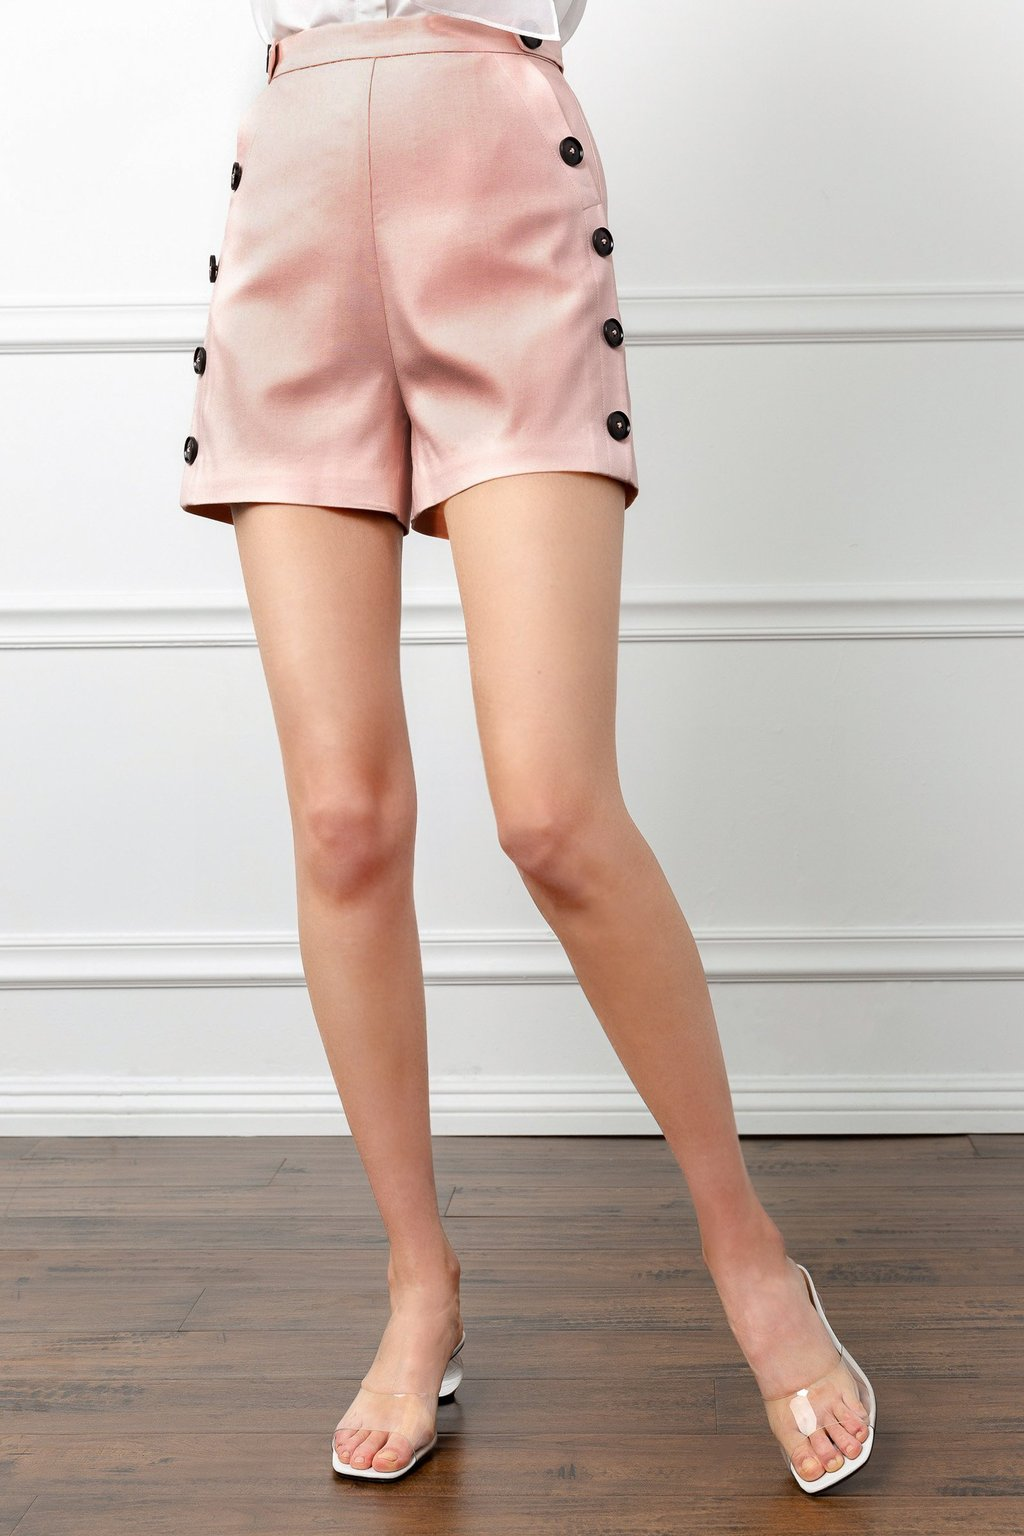 Silky Color Colored Shorts by J.ING women's fashion clothing